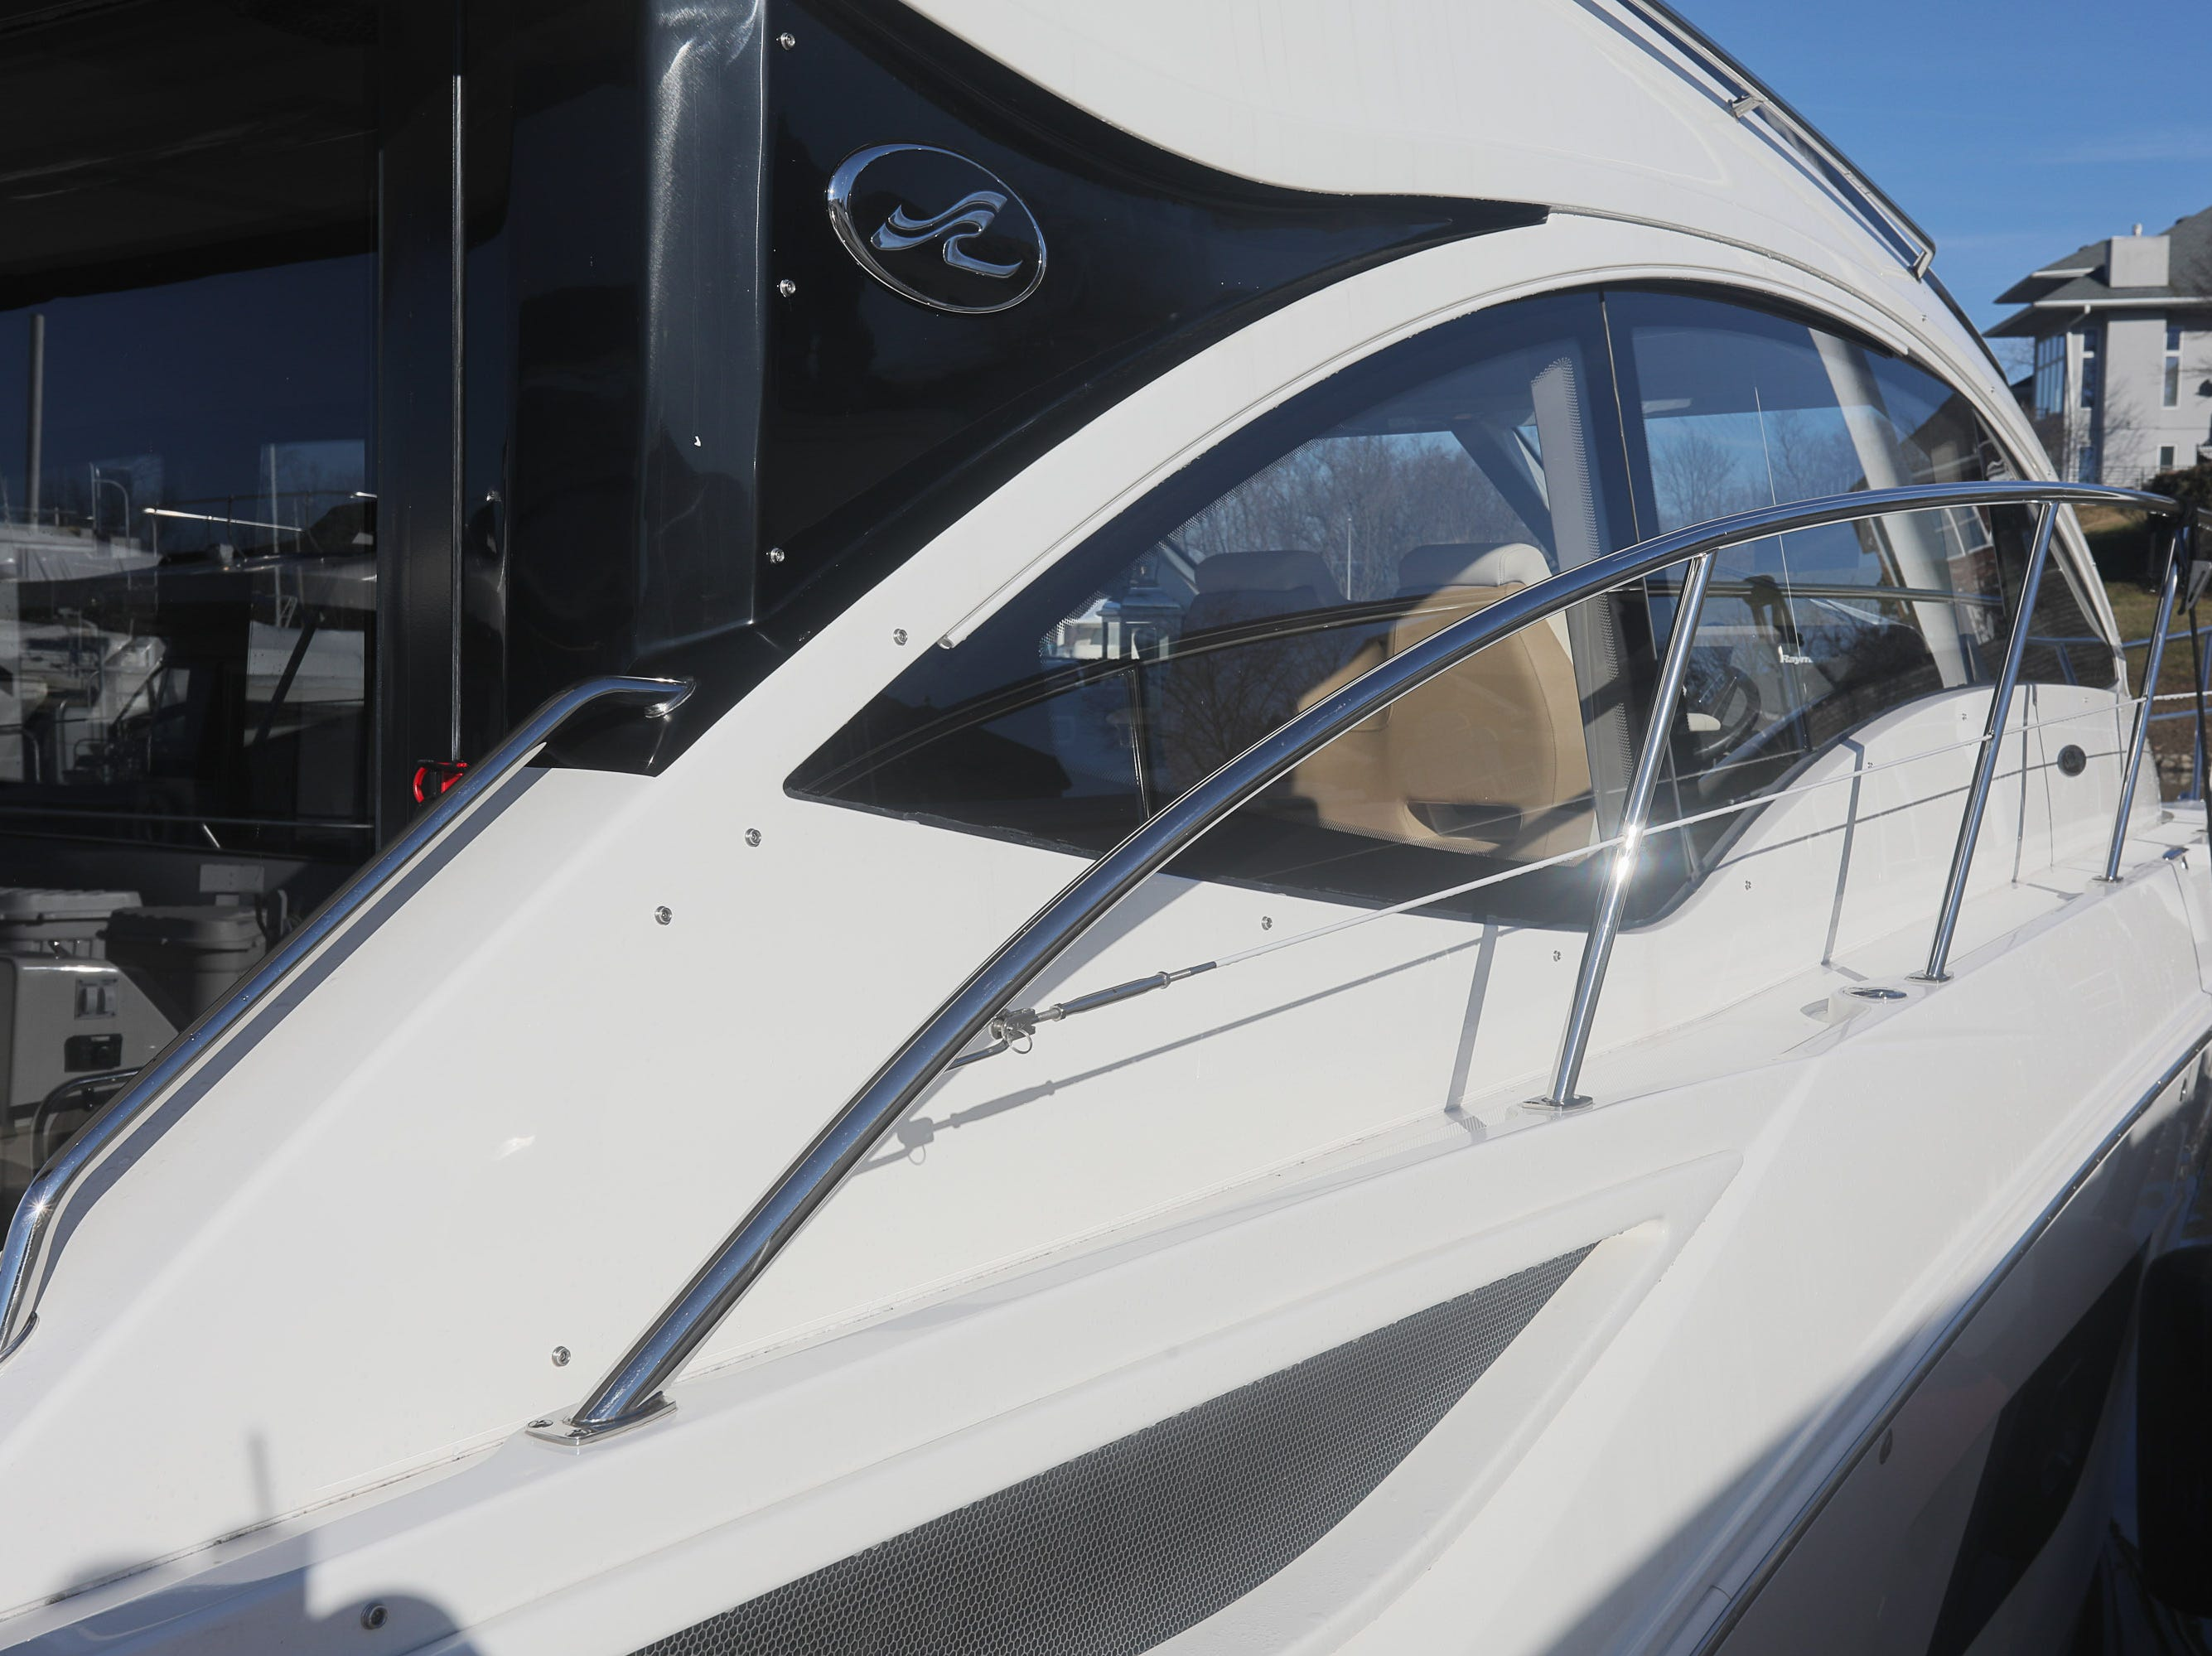 A 2017 Sea Ray 400 Sundancer at the Captain's Quarters marina in Louisville, KY. Dec. 17, 2018